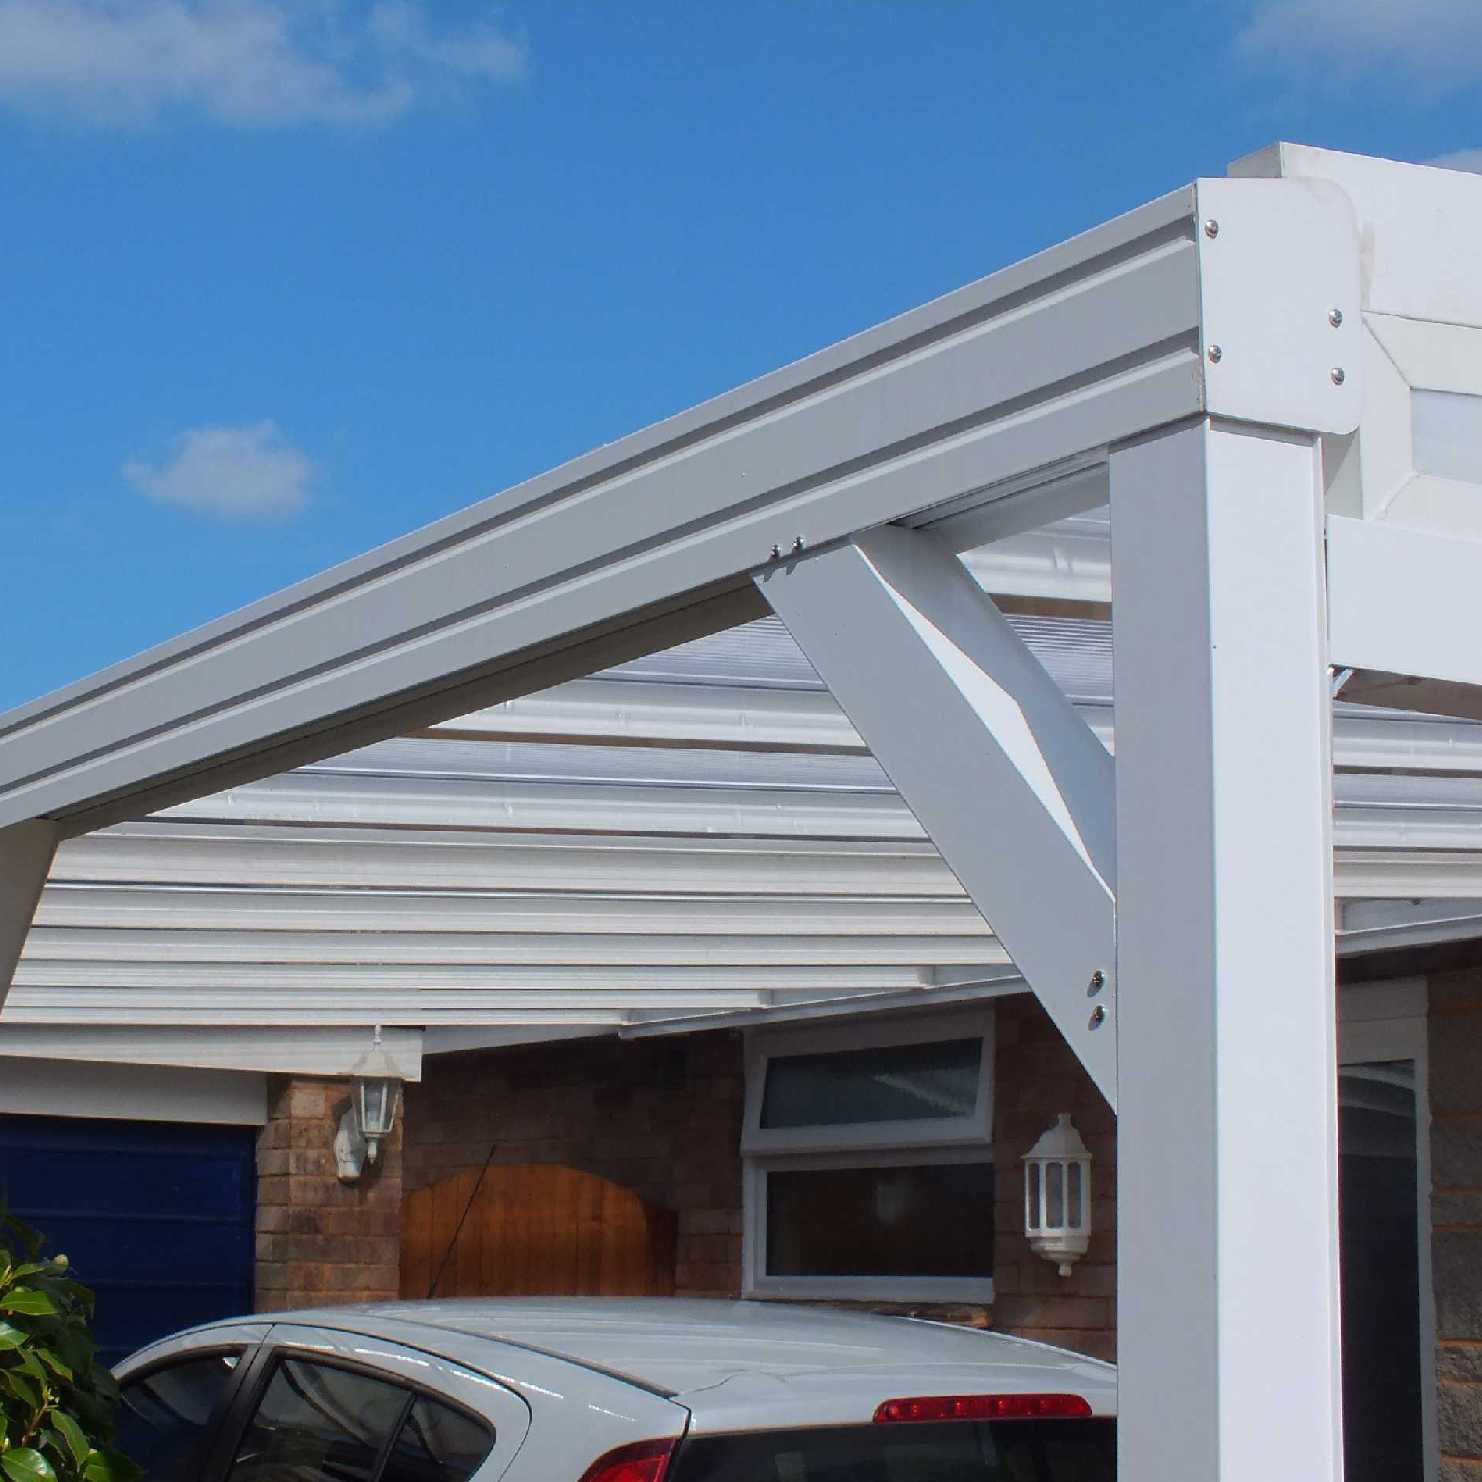 Buy Omega Smart White Lean-To Canopy with 16mm Polycarbonate Glazing - 10.6m (W) x 3.0m (P), (5) Supporting Posts online today